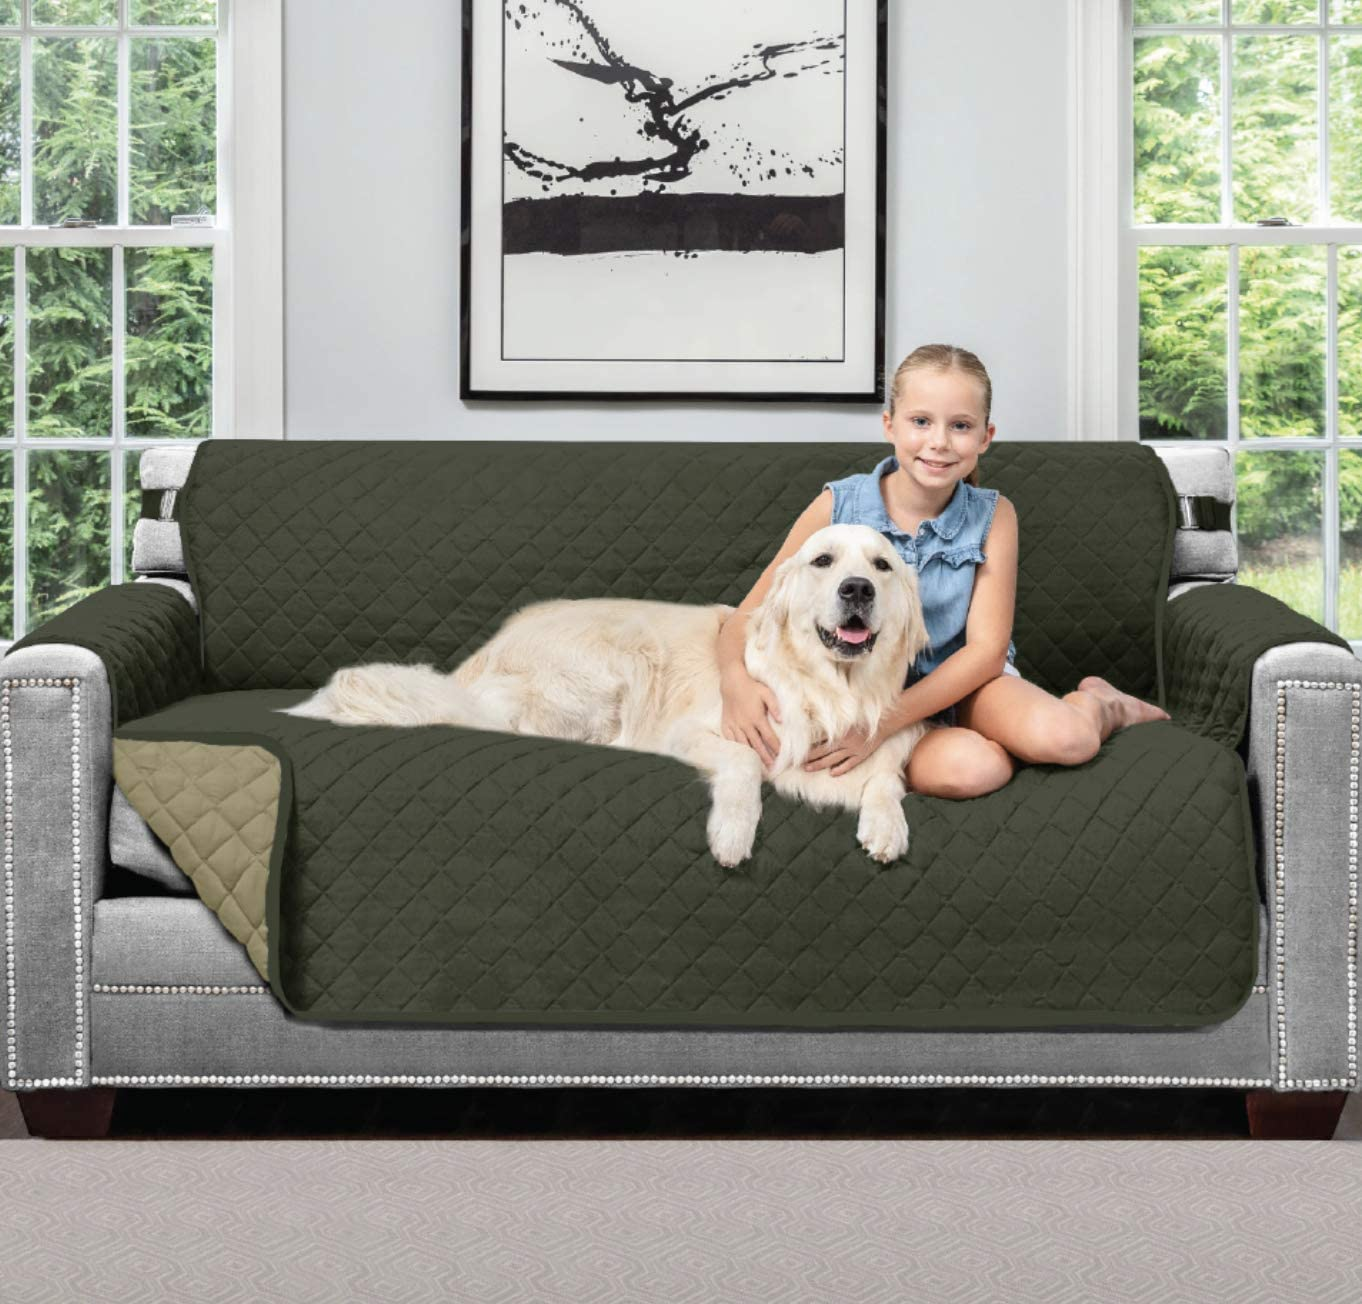 Sofa Shield Original Patent Pending Reversible Small Sofa Slipcover, 2 Inch Strap Hook, Seat Width Up to 62 Inch Washable Furniture Protector, Couch Slip Cover for Pets, Small Sofa, Hunter Green Sage